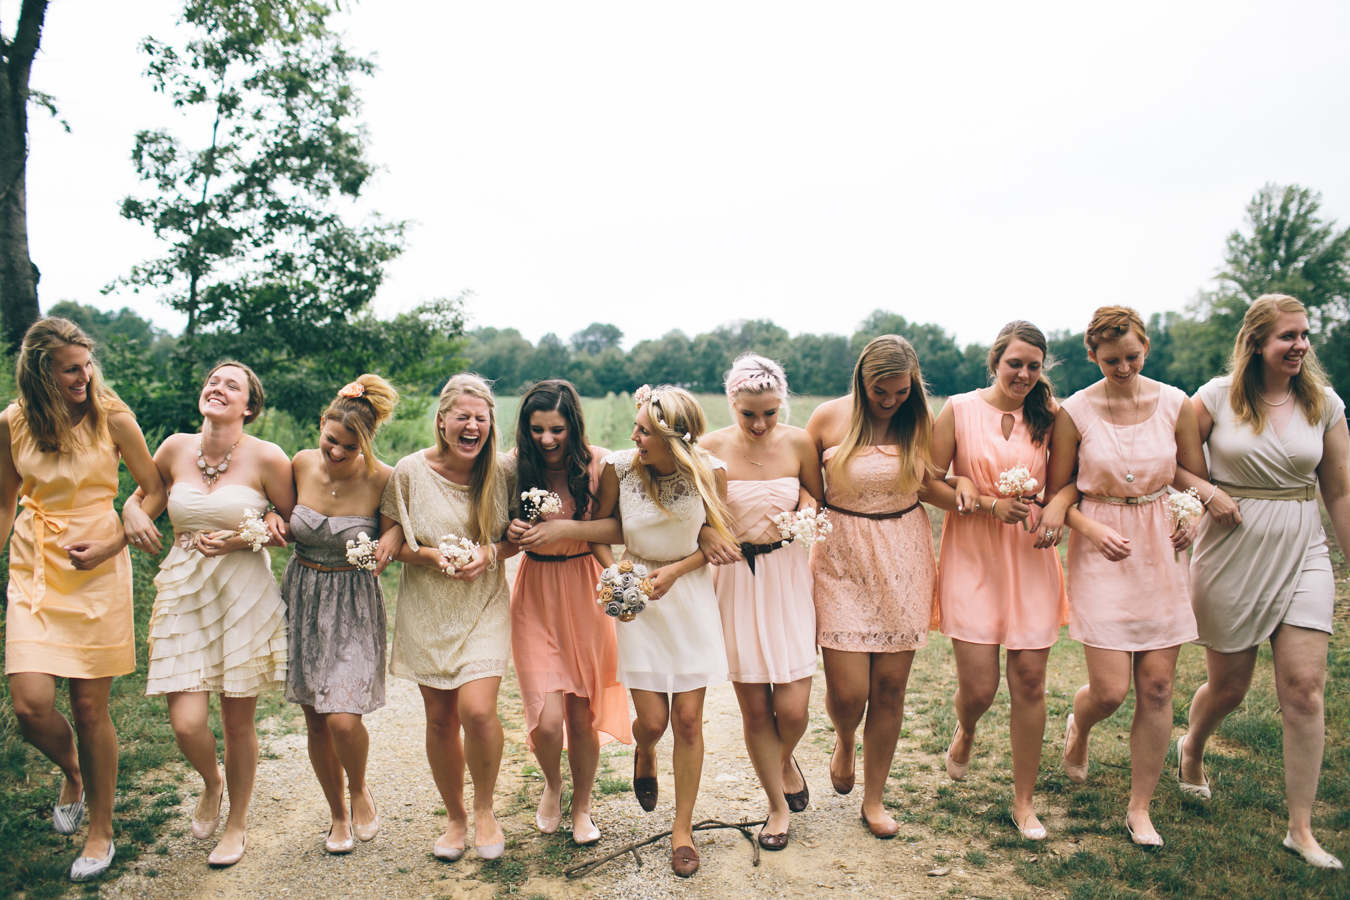 georgia favorites tatum barns planning for the dress wedding dream acres tips kristen north at venue ley tag barn archives